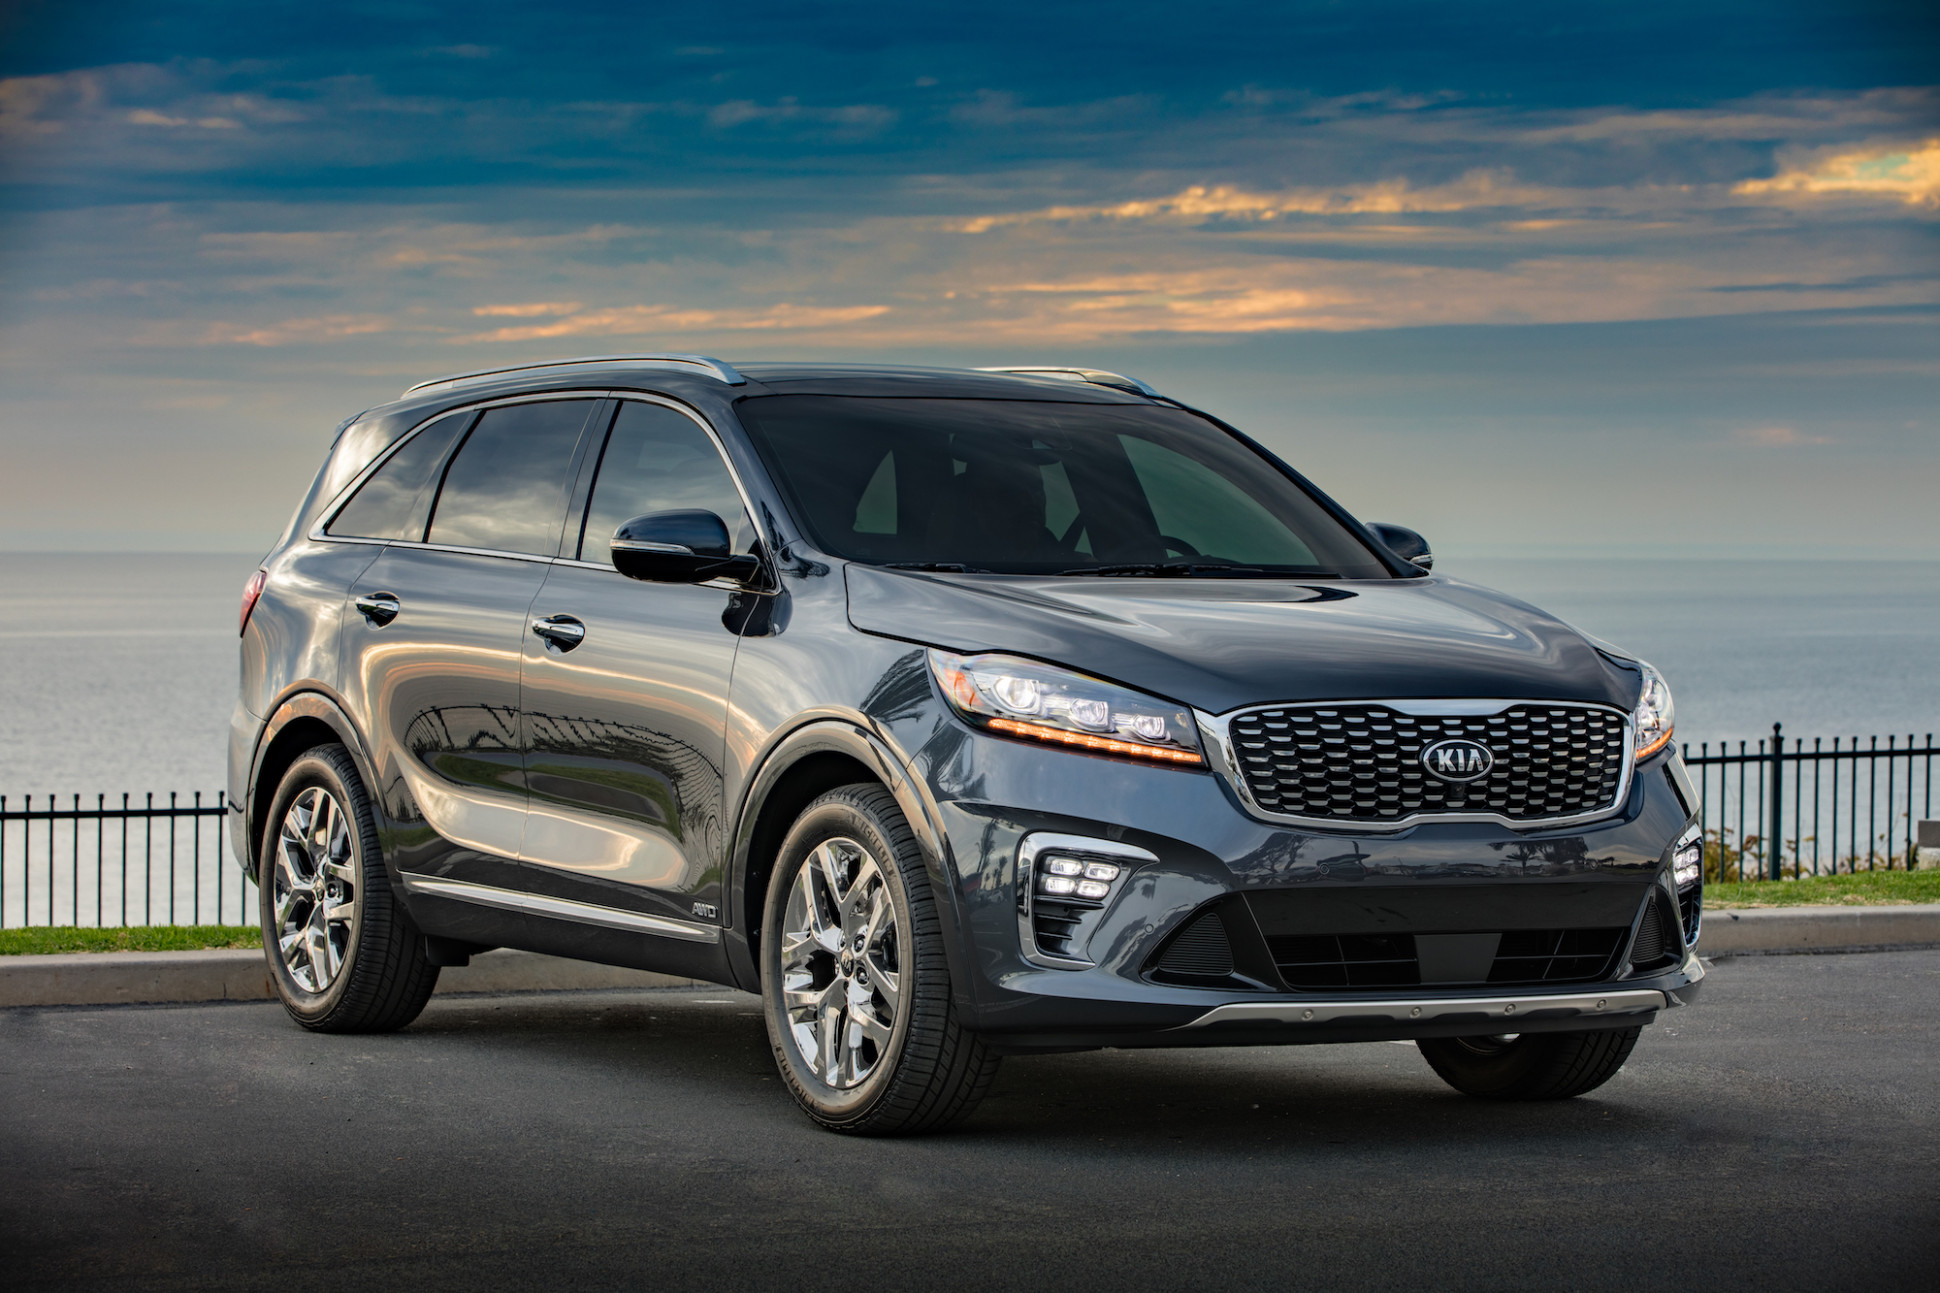 9 Kia Sorento - The Car Gossip - 2020 kia suv